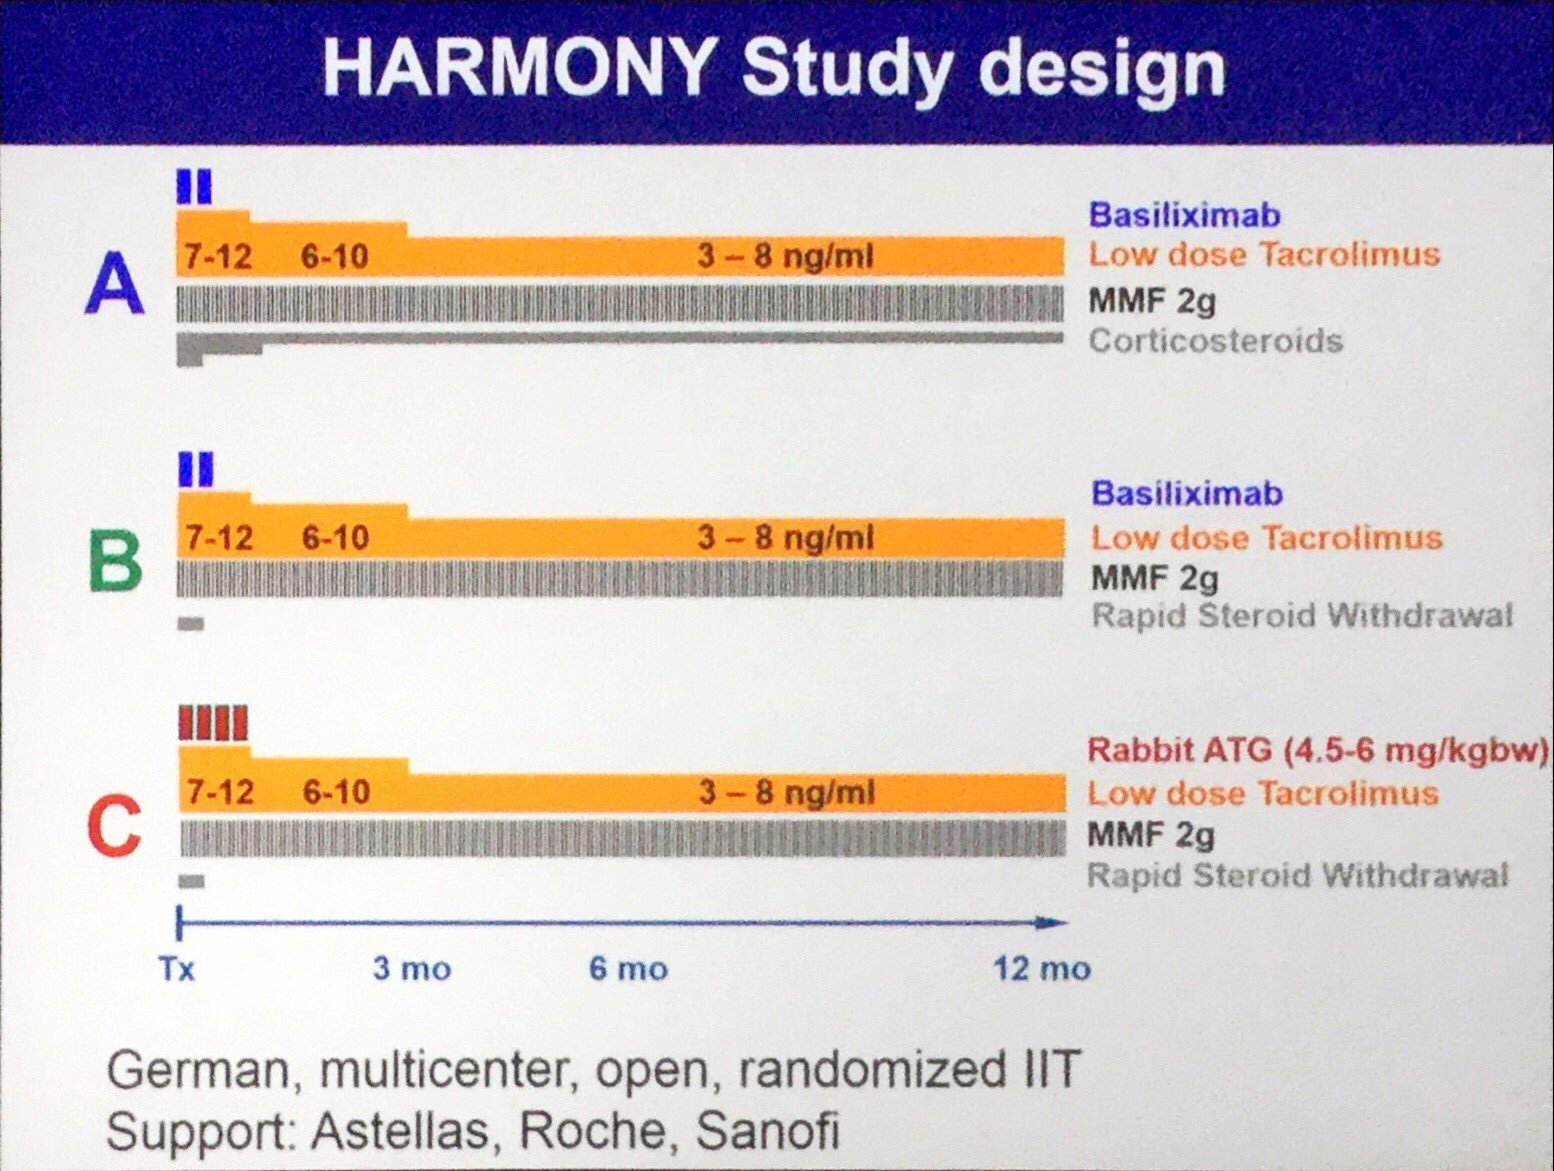 Thumbnail for HARMONY: Is it safe to withdraw steroids early after Kidney Transplant?